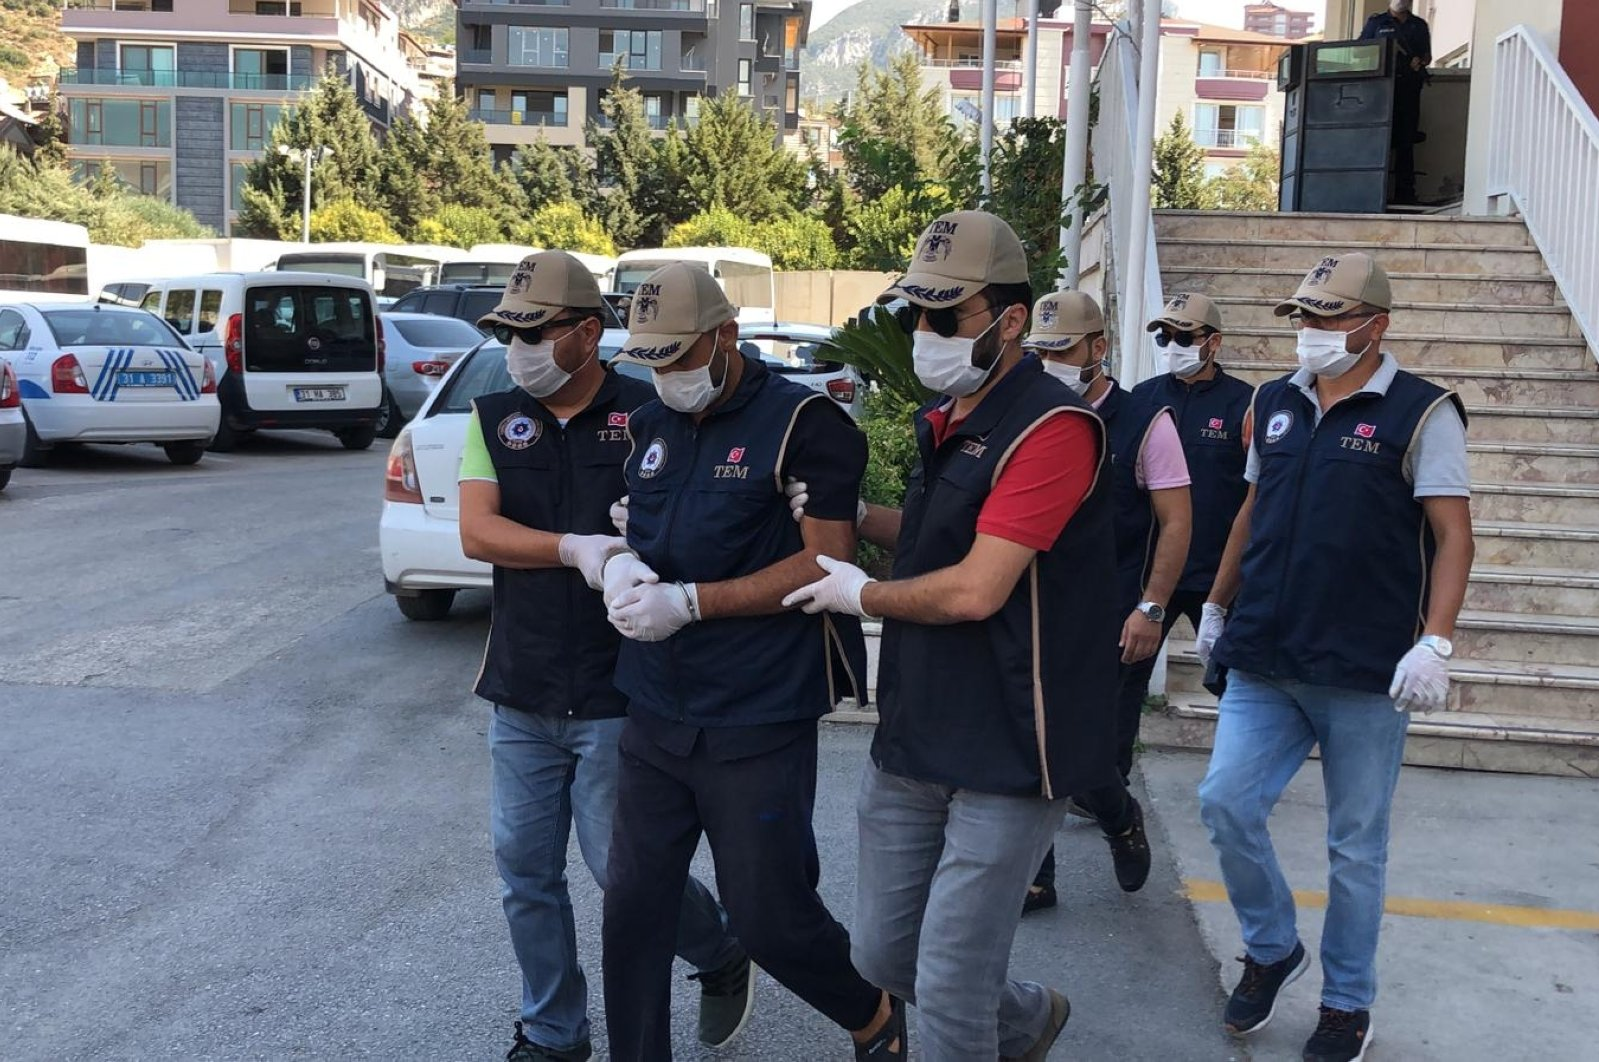 Ercan Bayat, in handcuffs, is escorted to the courthouse in Hatay's Reyhanlı, Sept. 10, 2020 (DHA Photo)